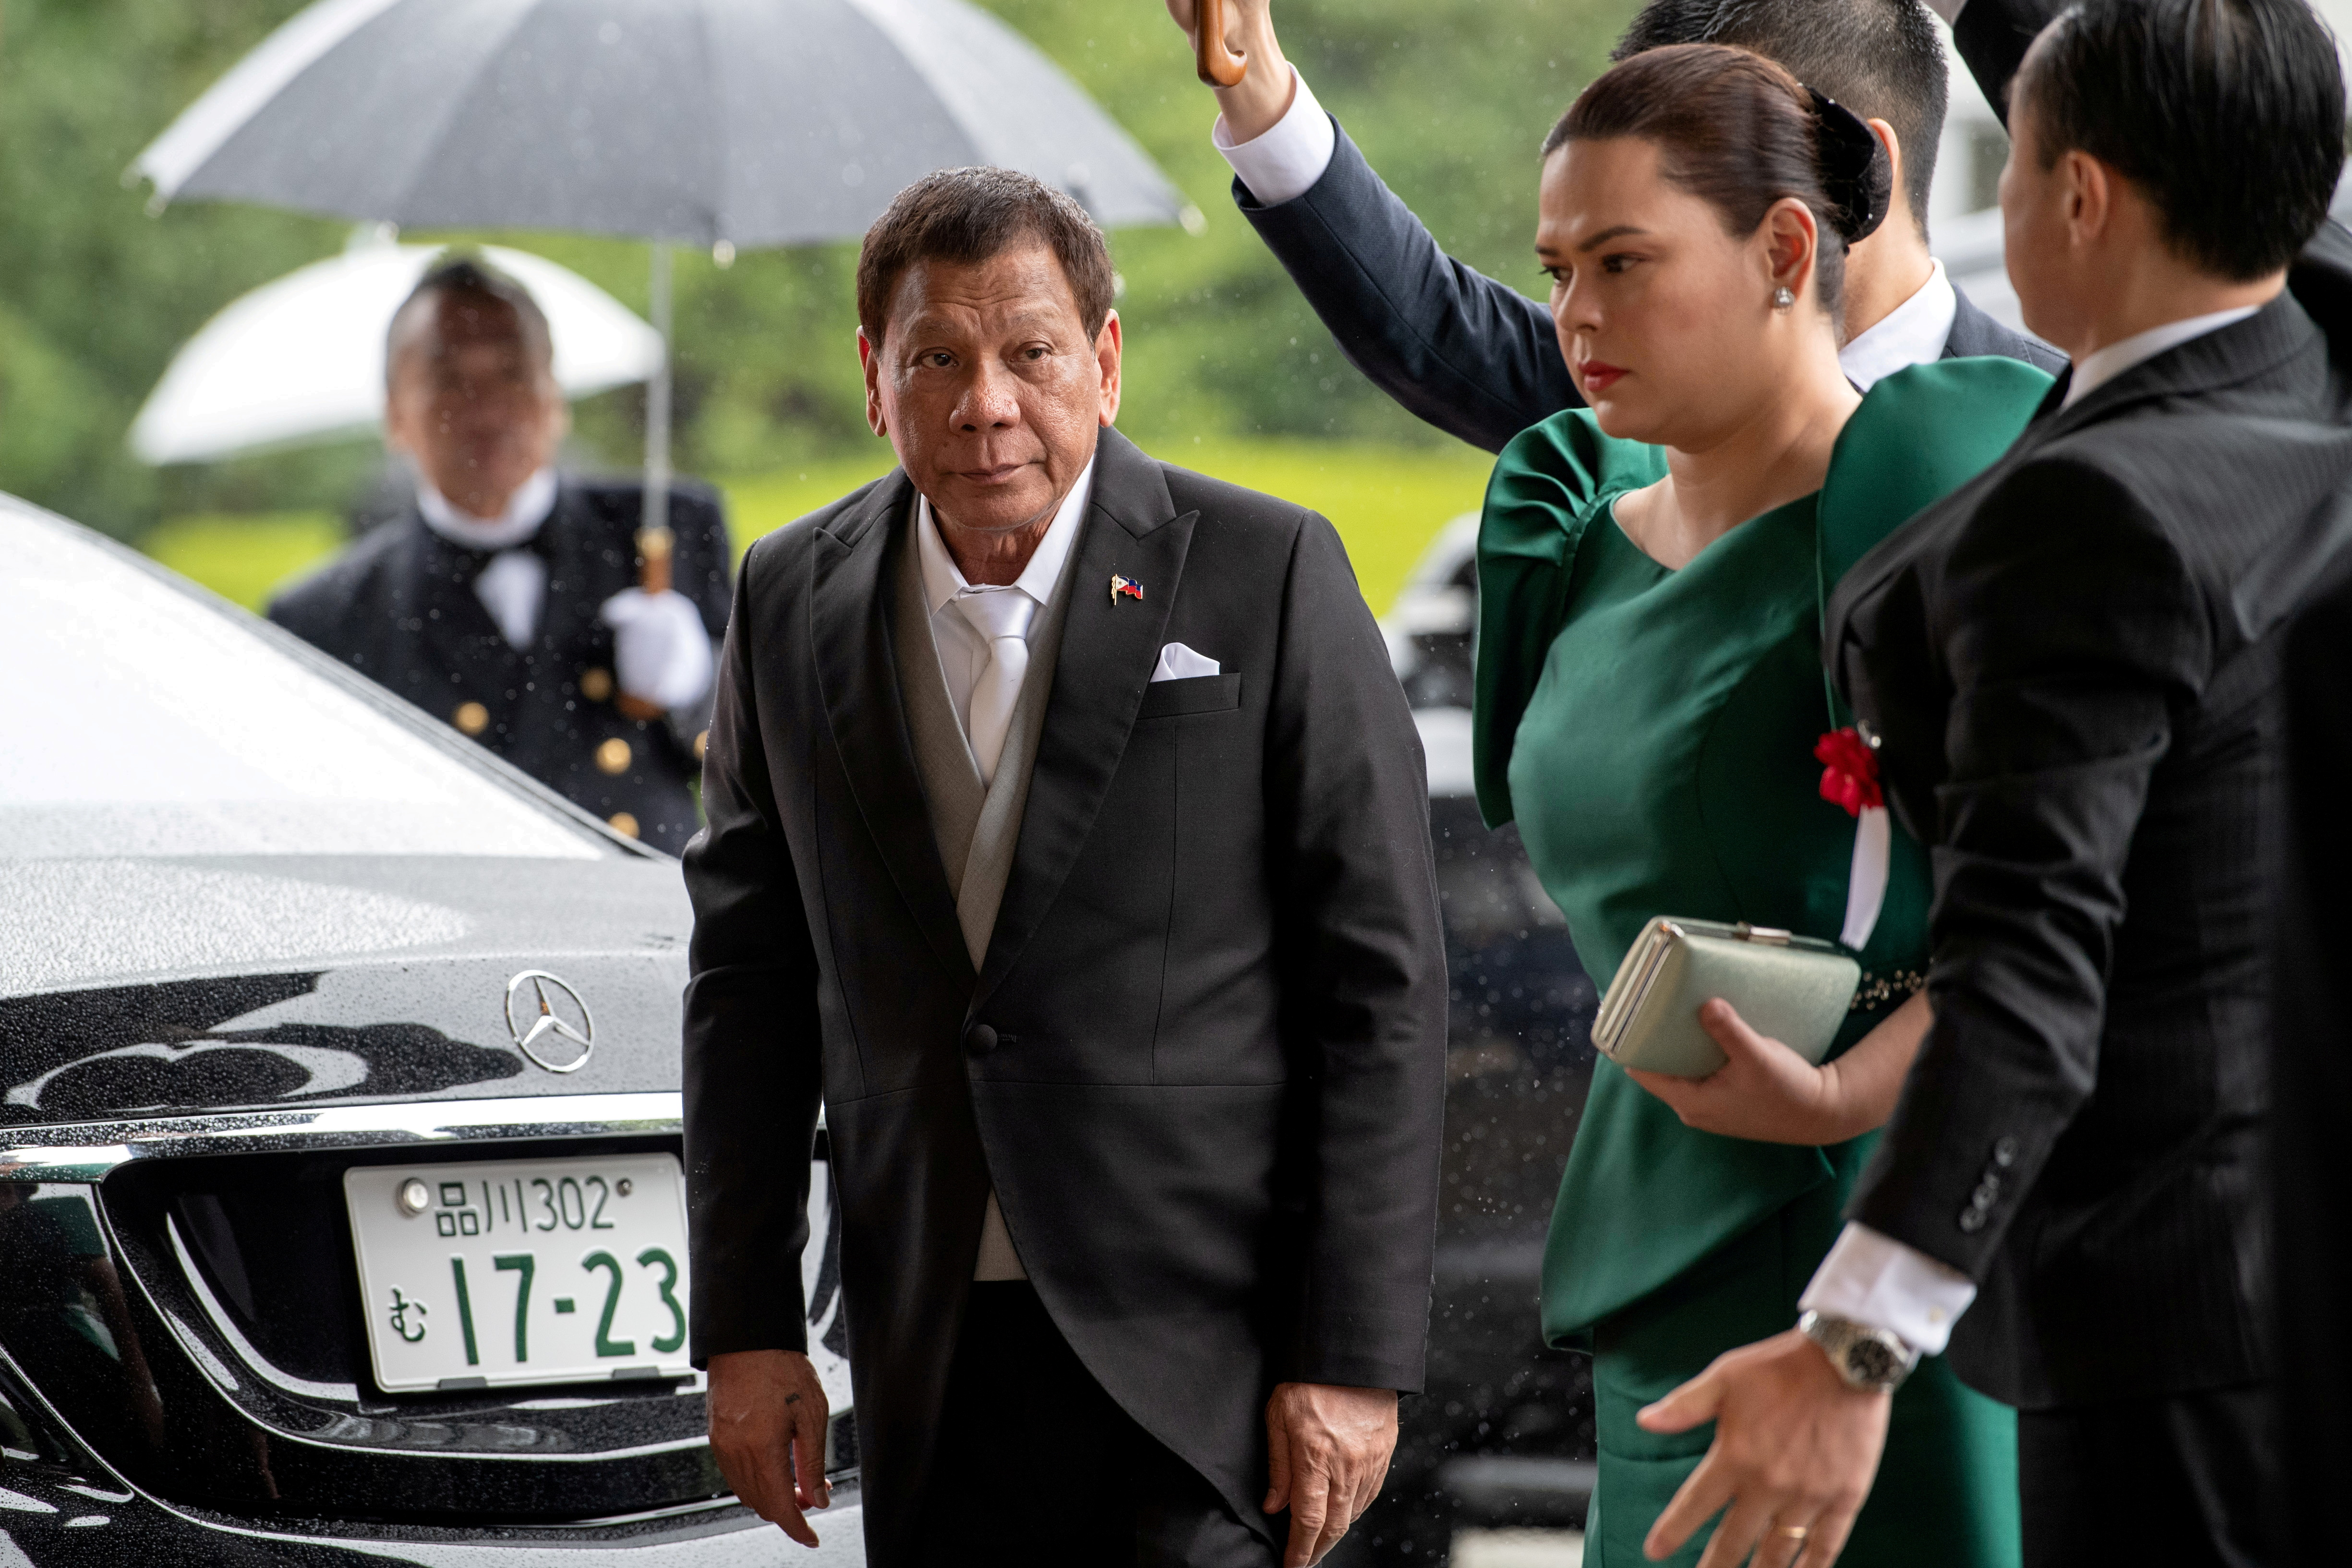 Philippines President Rodrigo Duterte arrives with daughter Sara Duterte-Carpio to attend the enthronement ceremony of Japan's Emperor Naruhito in Tokyo, Japan October 22, 2019.  Carl Court/Pool via REUTERS/File Photo